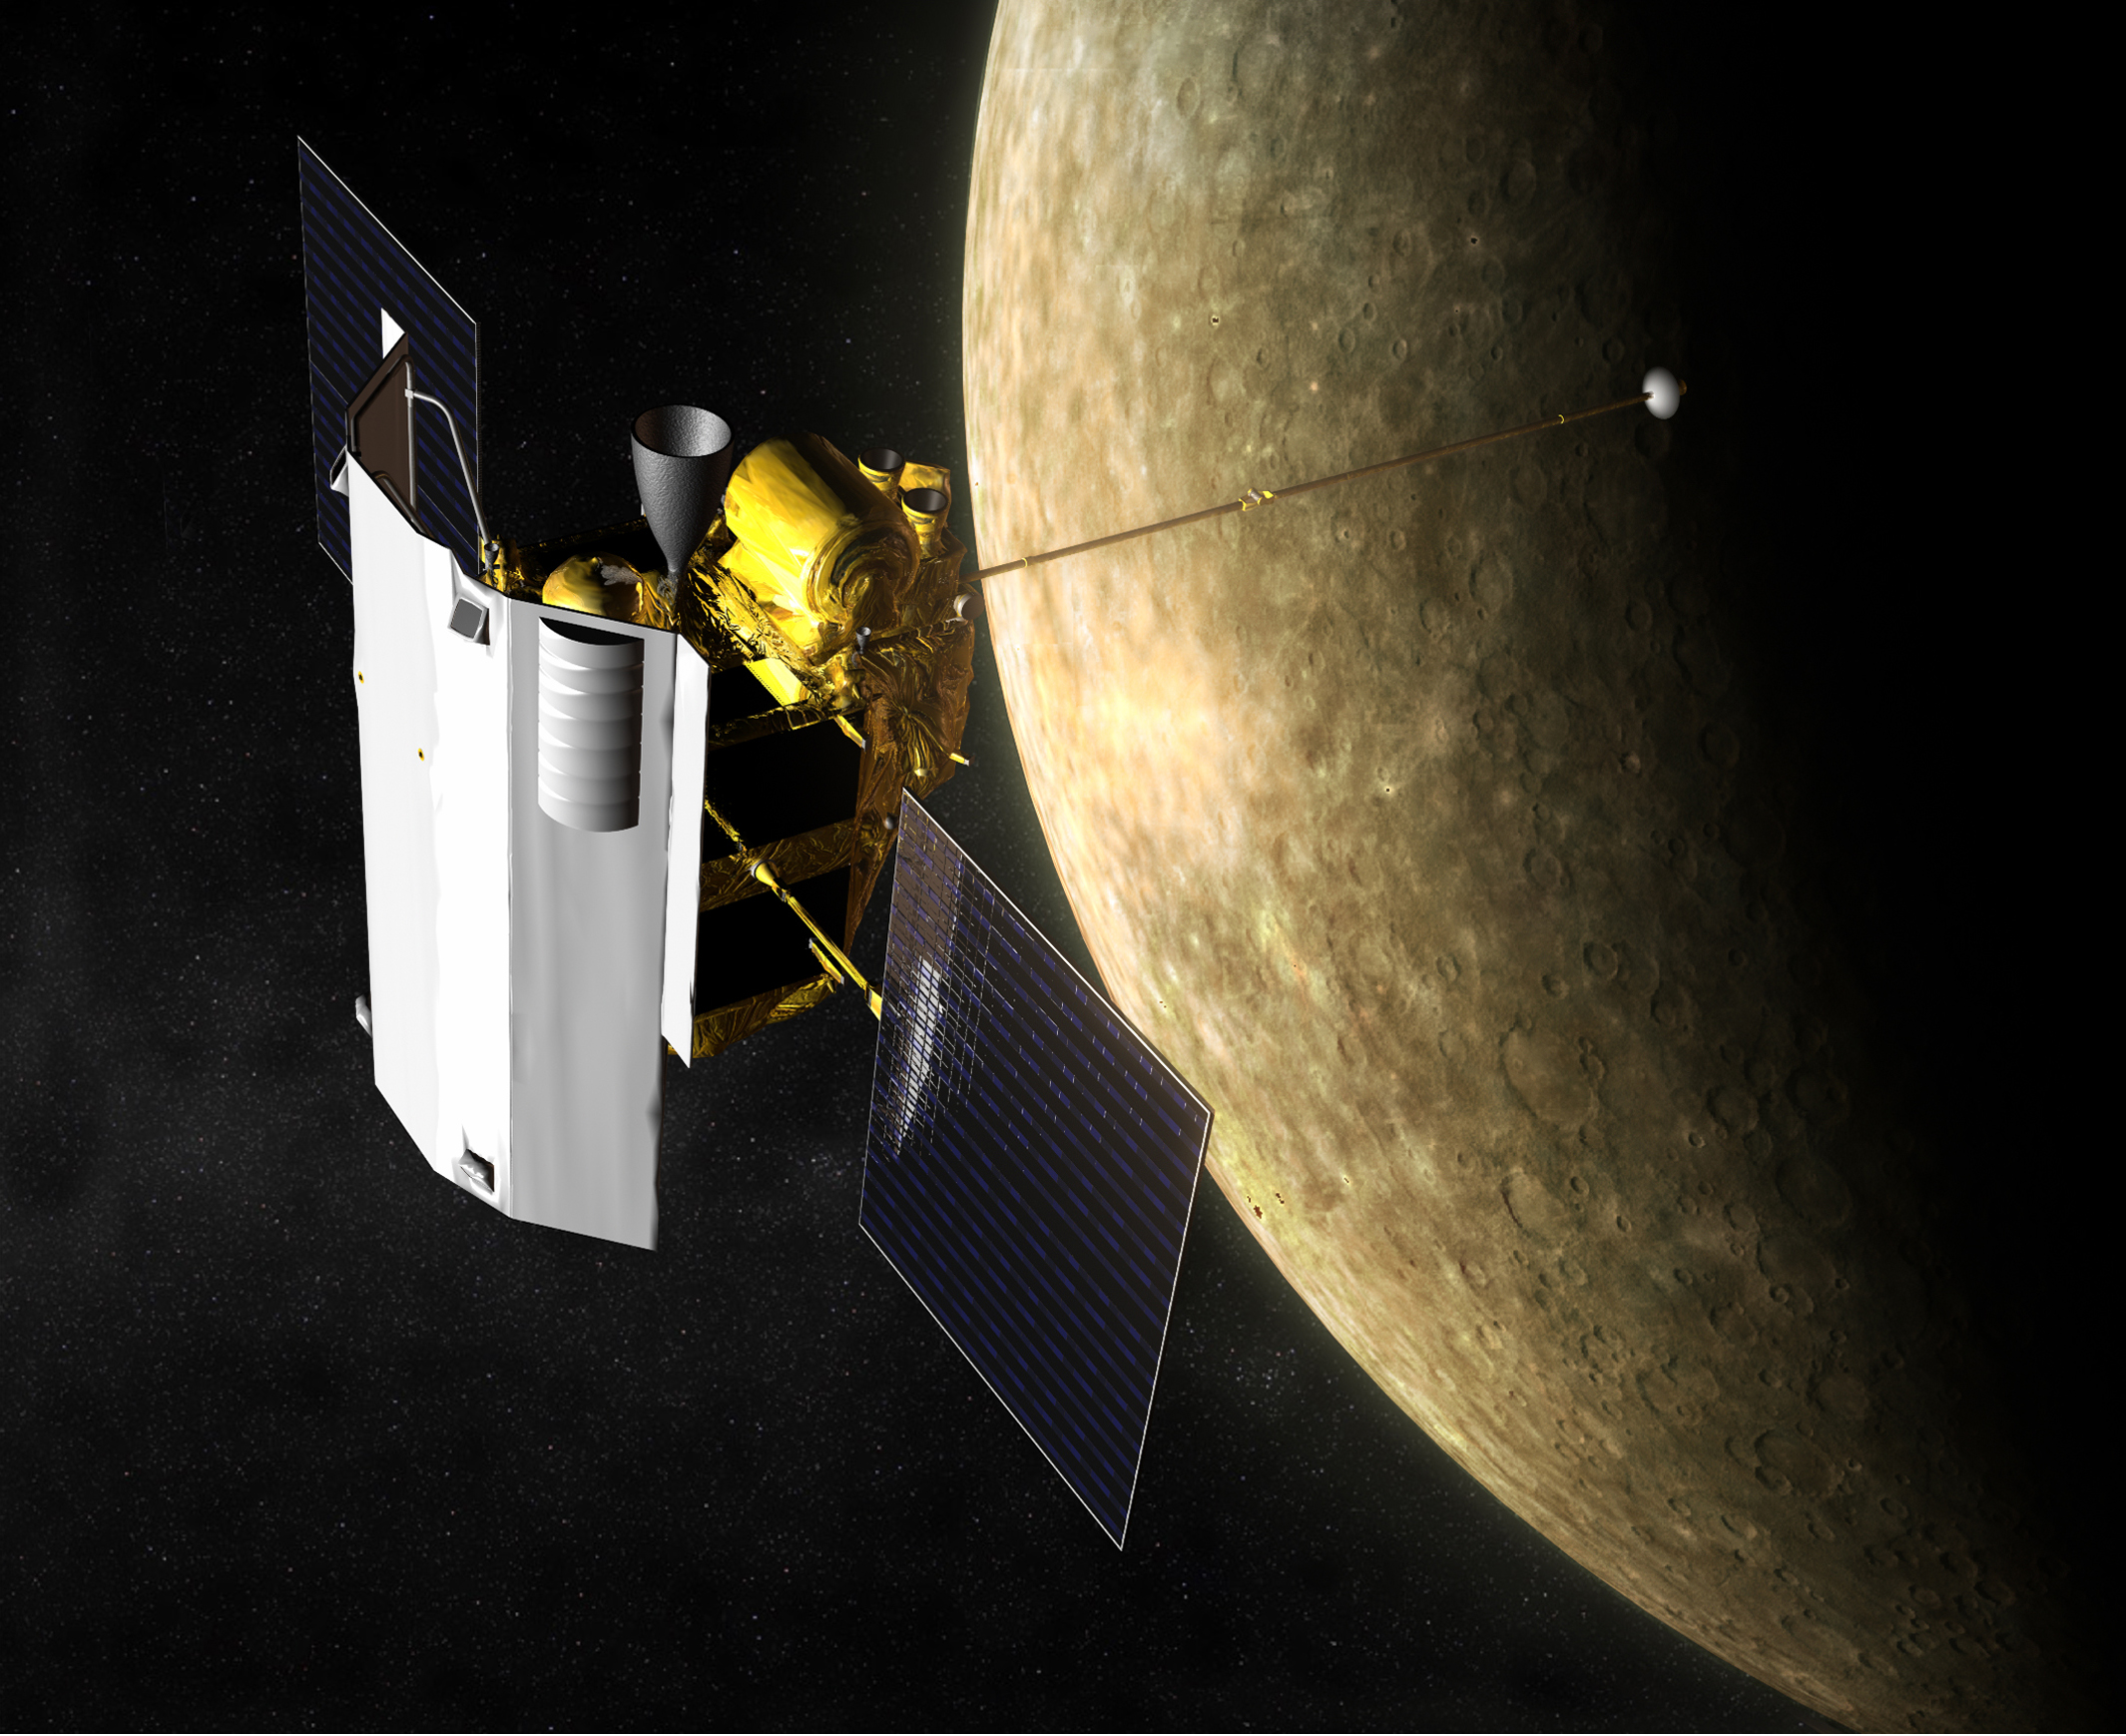 NASA Spacecraft Crashes Into Mercury Today: See the Live Slooh Webcast